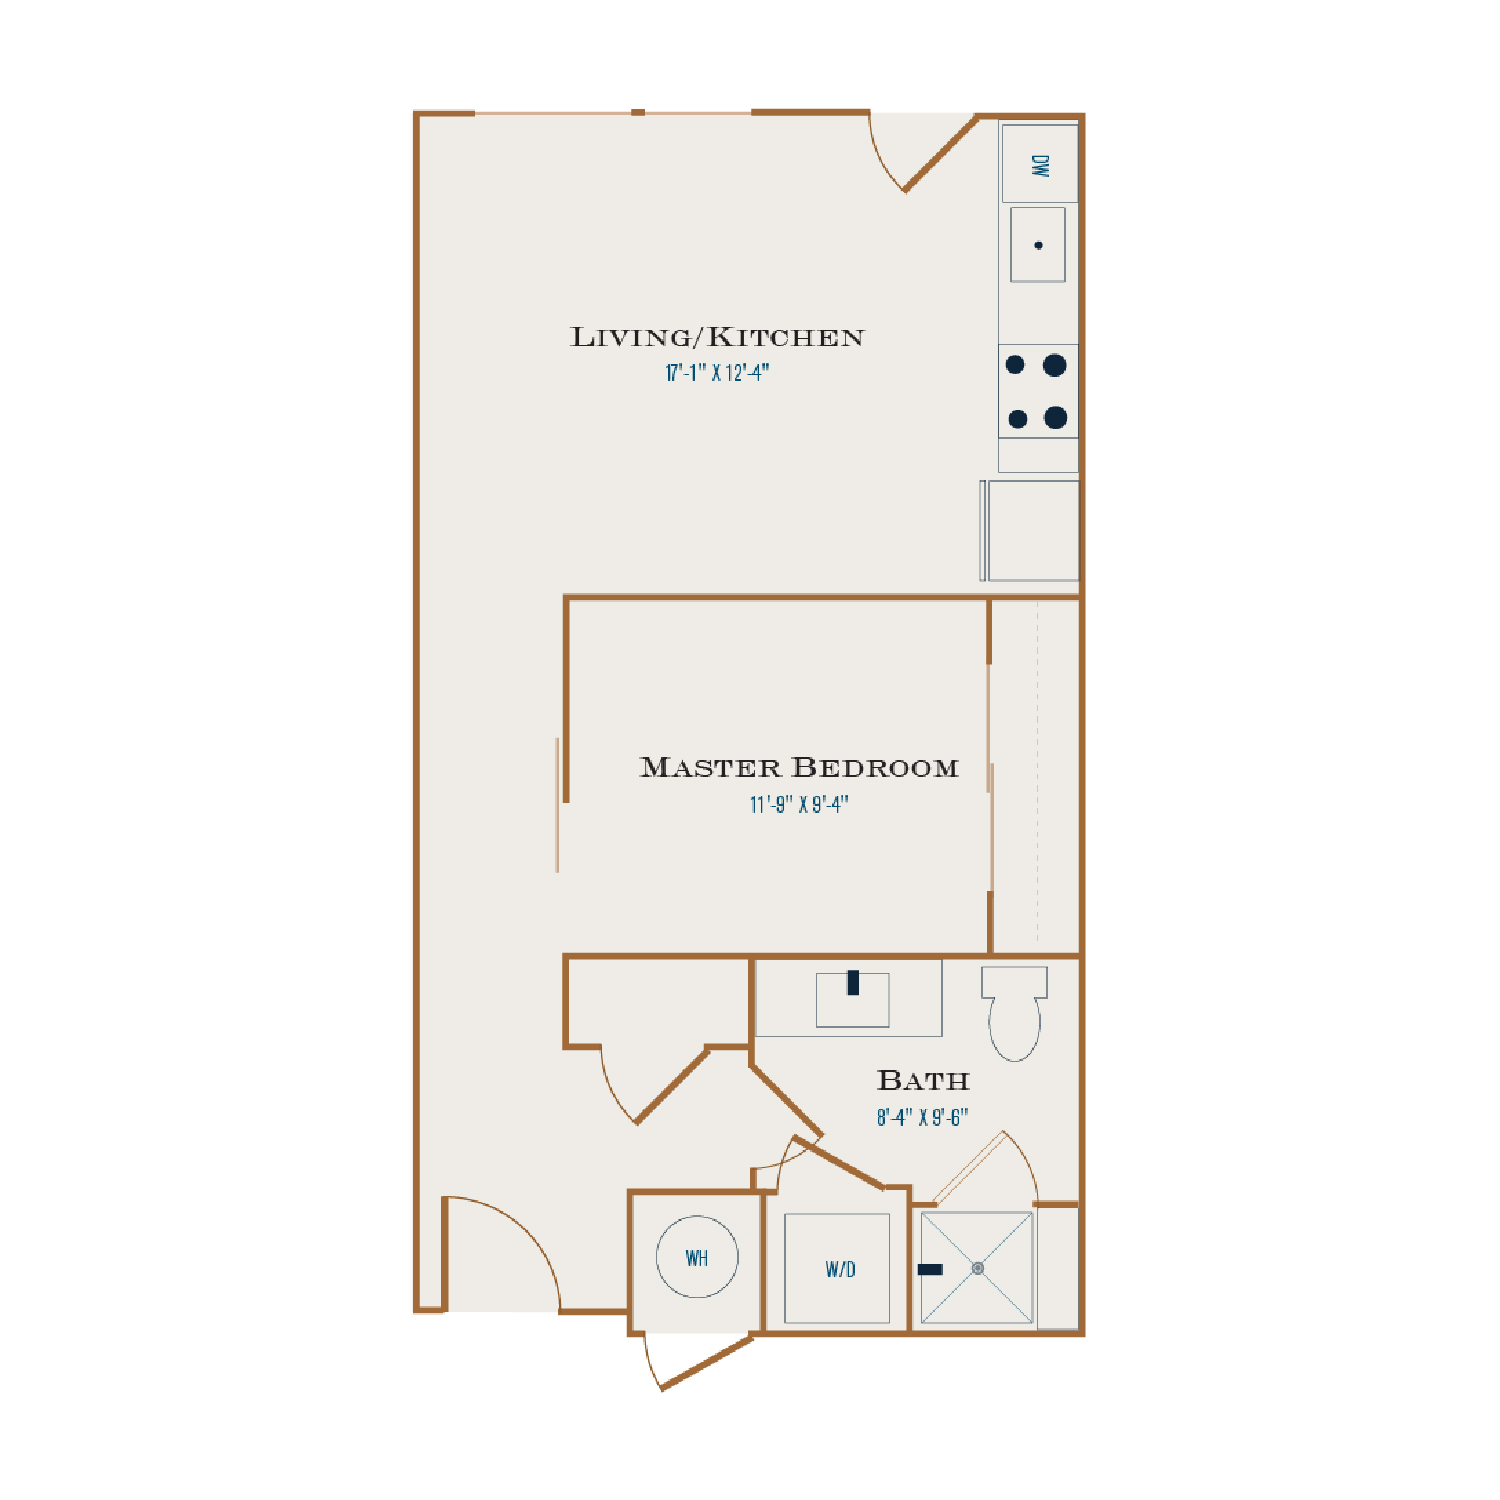 U One floor plan. One bedroom, one bathroom, an open kitchen and living area, and a washer dryer.